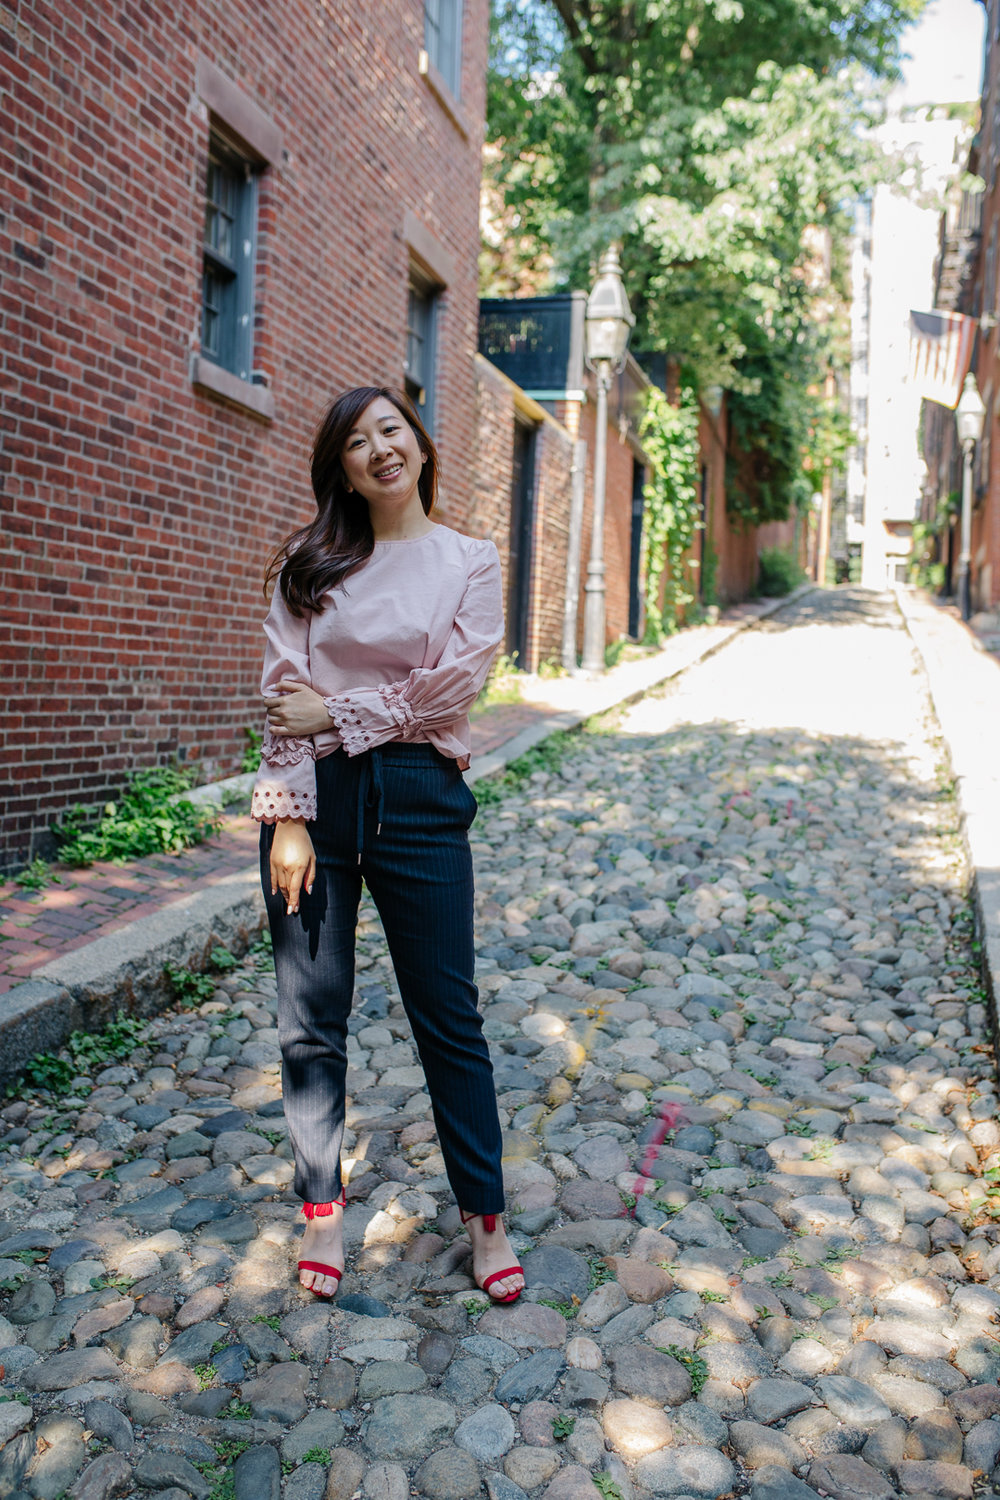 Street style shot on Acorn Street. Photo by Brad Bahner.